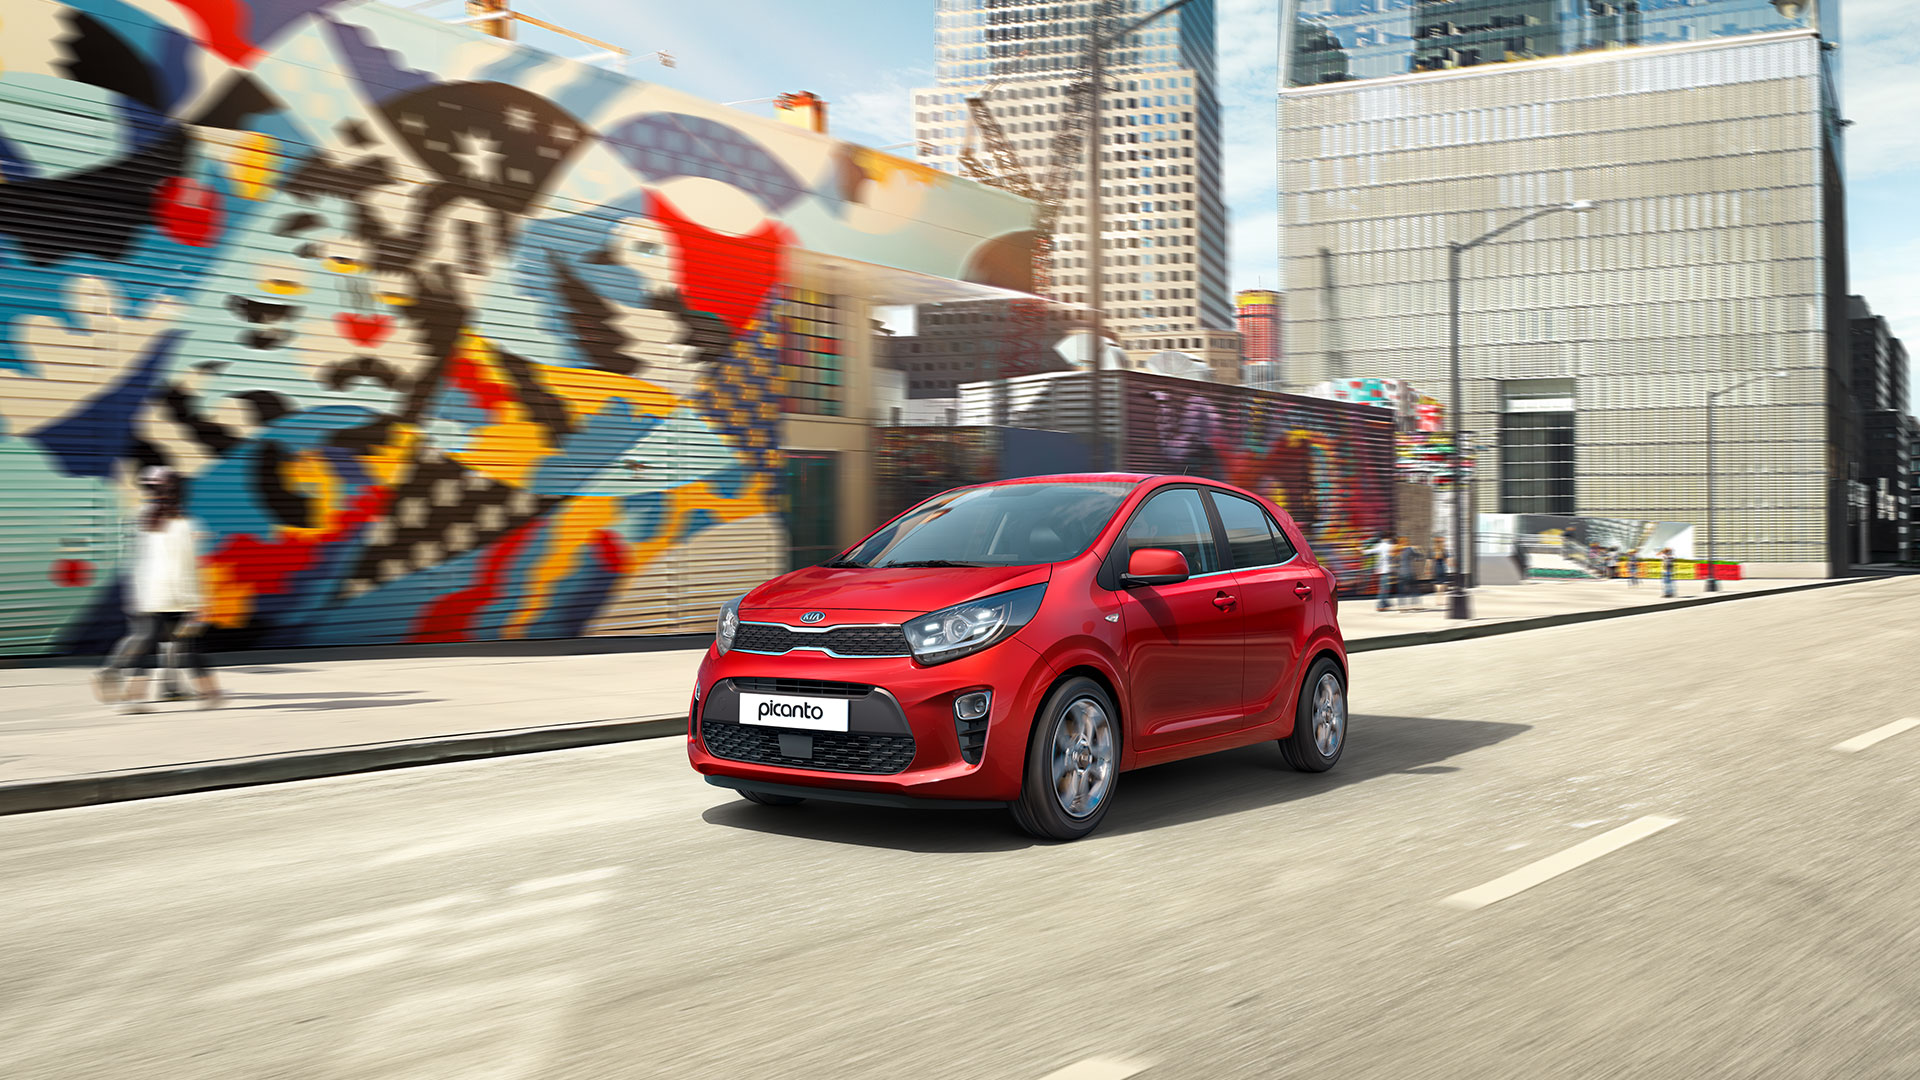 A DISTINCTIVE NEW DESIGN WITH  BUNDLES OF HIGH-TECH FEATURES ON NEW KIA PICANTO